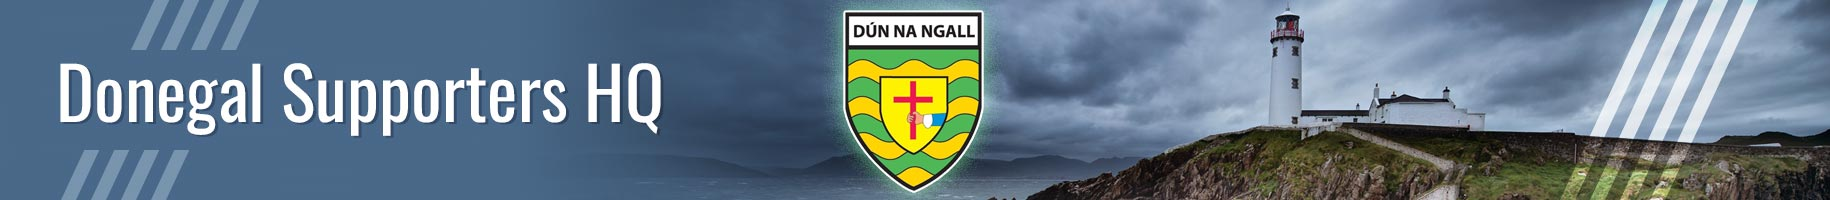 Donegal Supporters HQ